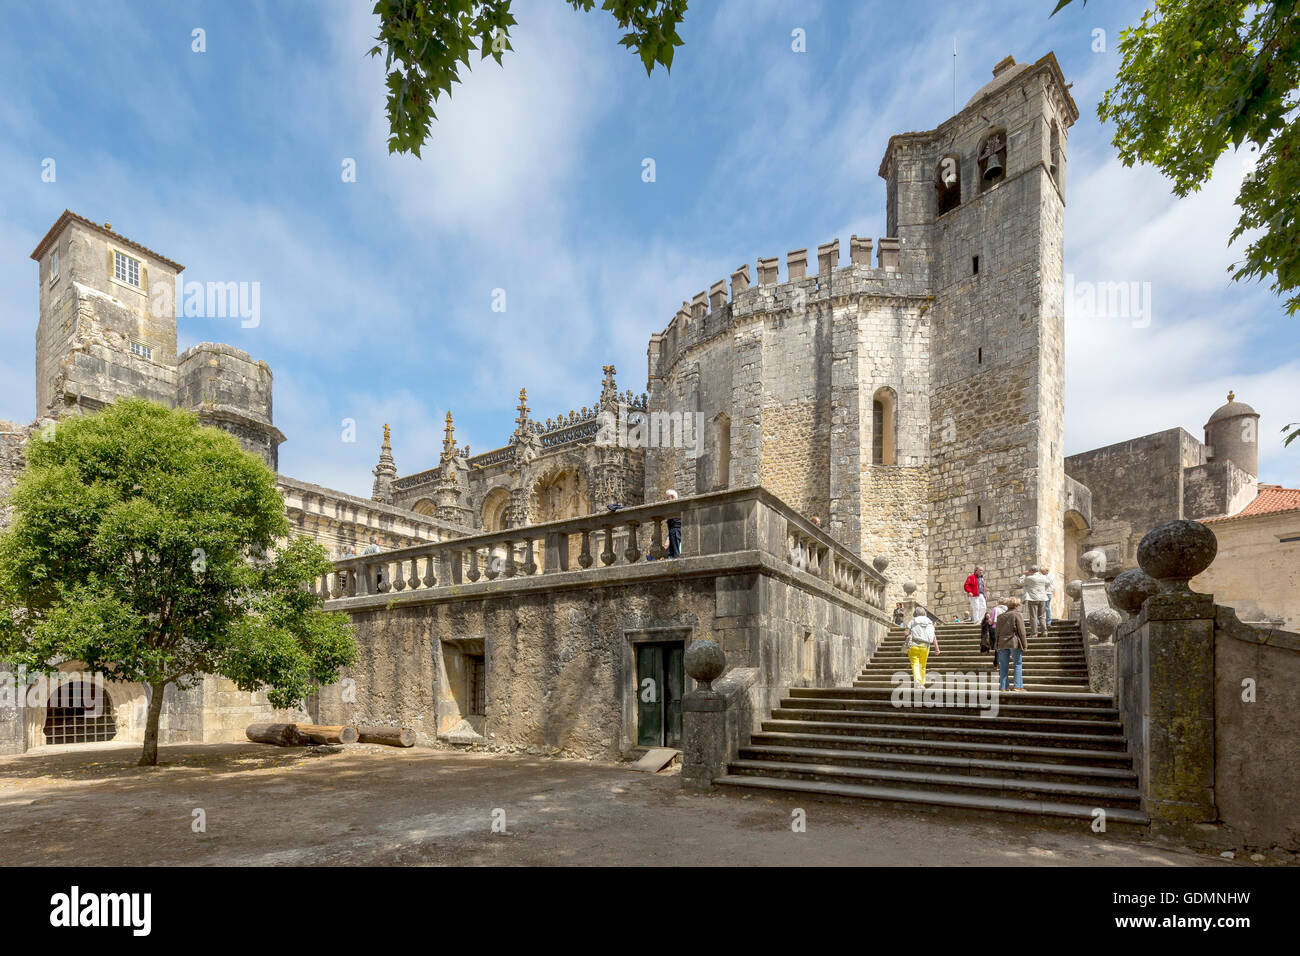 Fortress of Tomar, the castle of the Knights Templar, Templar, UNESCO Heritage, Tomar, Santarem, Portugal, Europe, - Stock Image